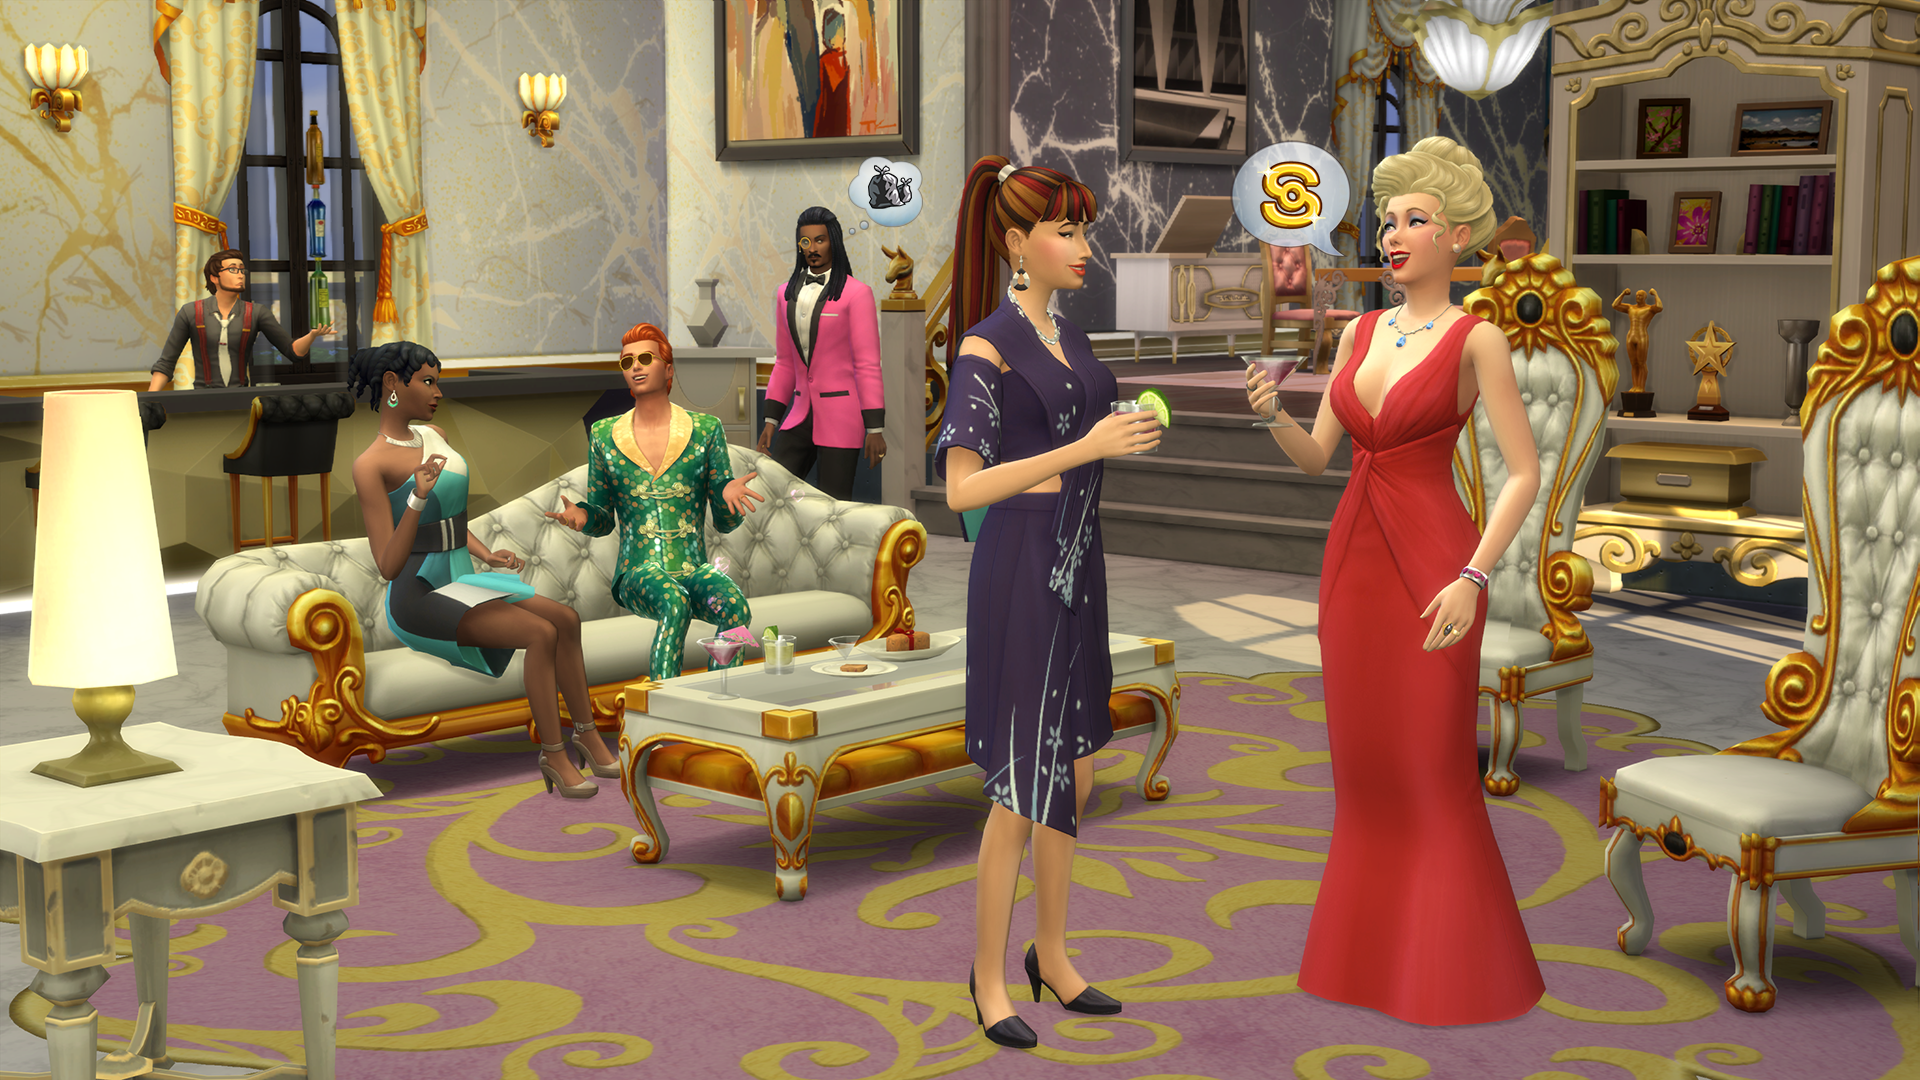 the sims 4 get famous screenshot release date